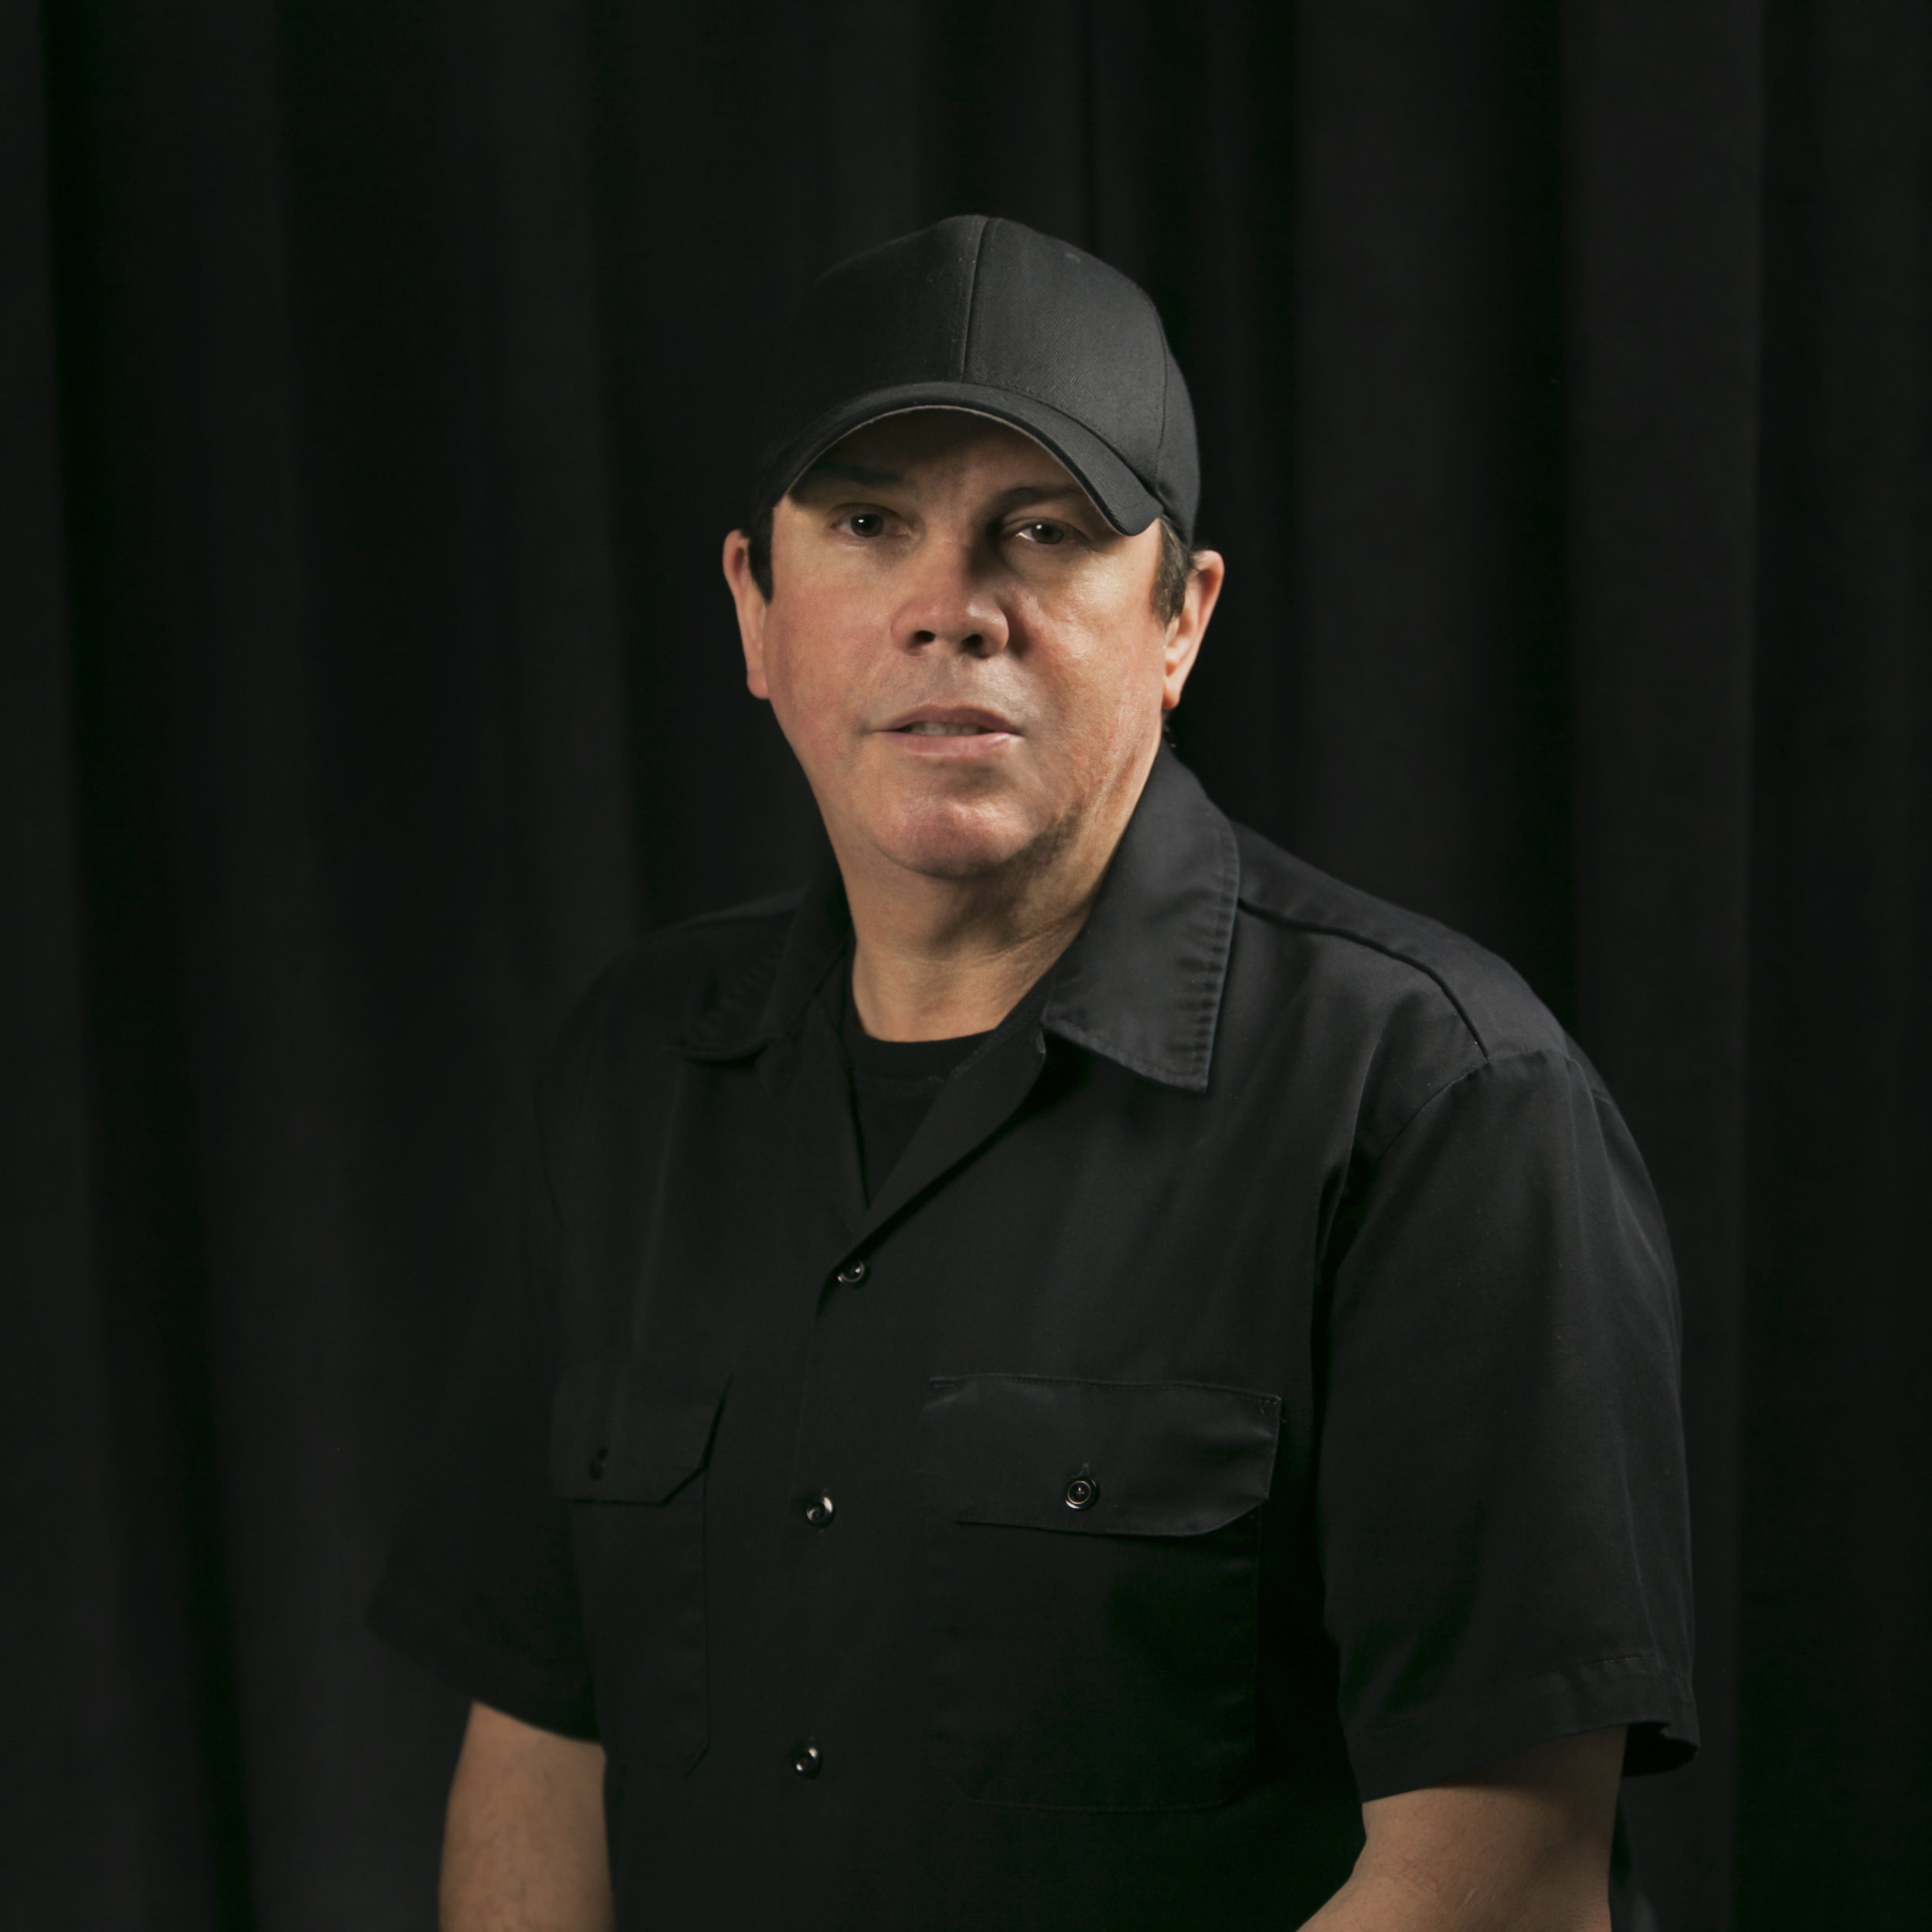 Dennis Sanders - COO of World Music NashvilleCEO of The Label Group (an INgrooves distribution label, management, and production company)20+ years of management experience for gold and platinum artists!